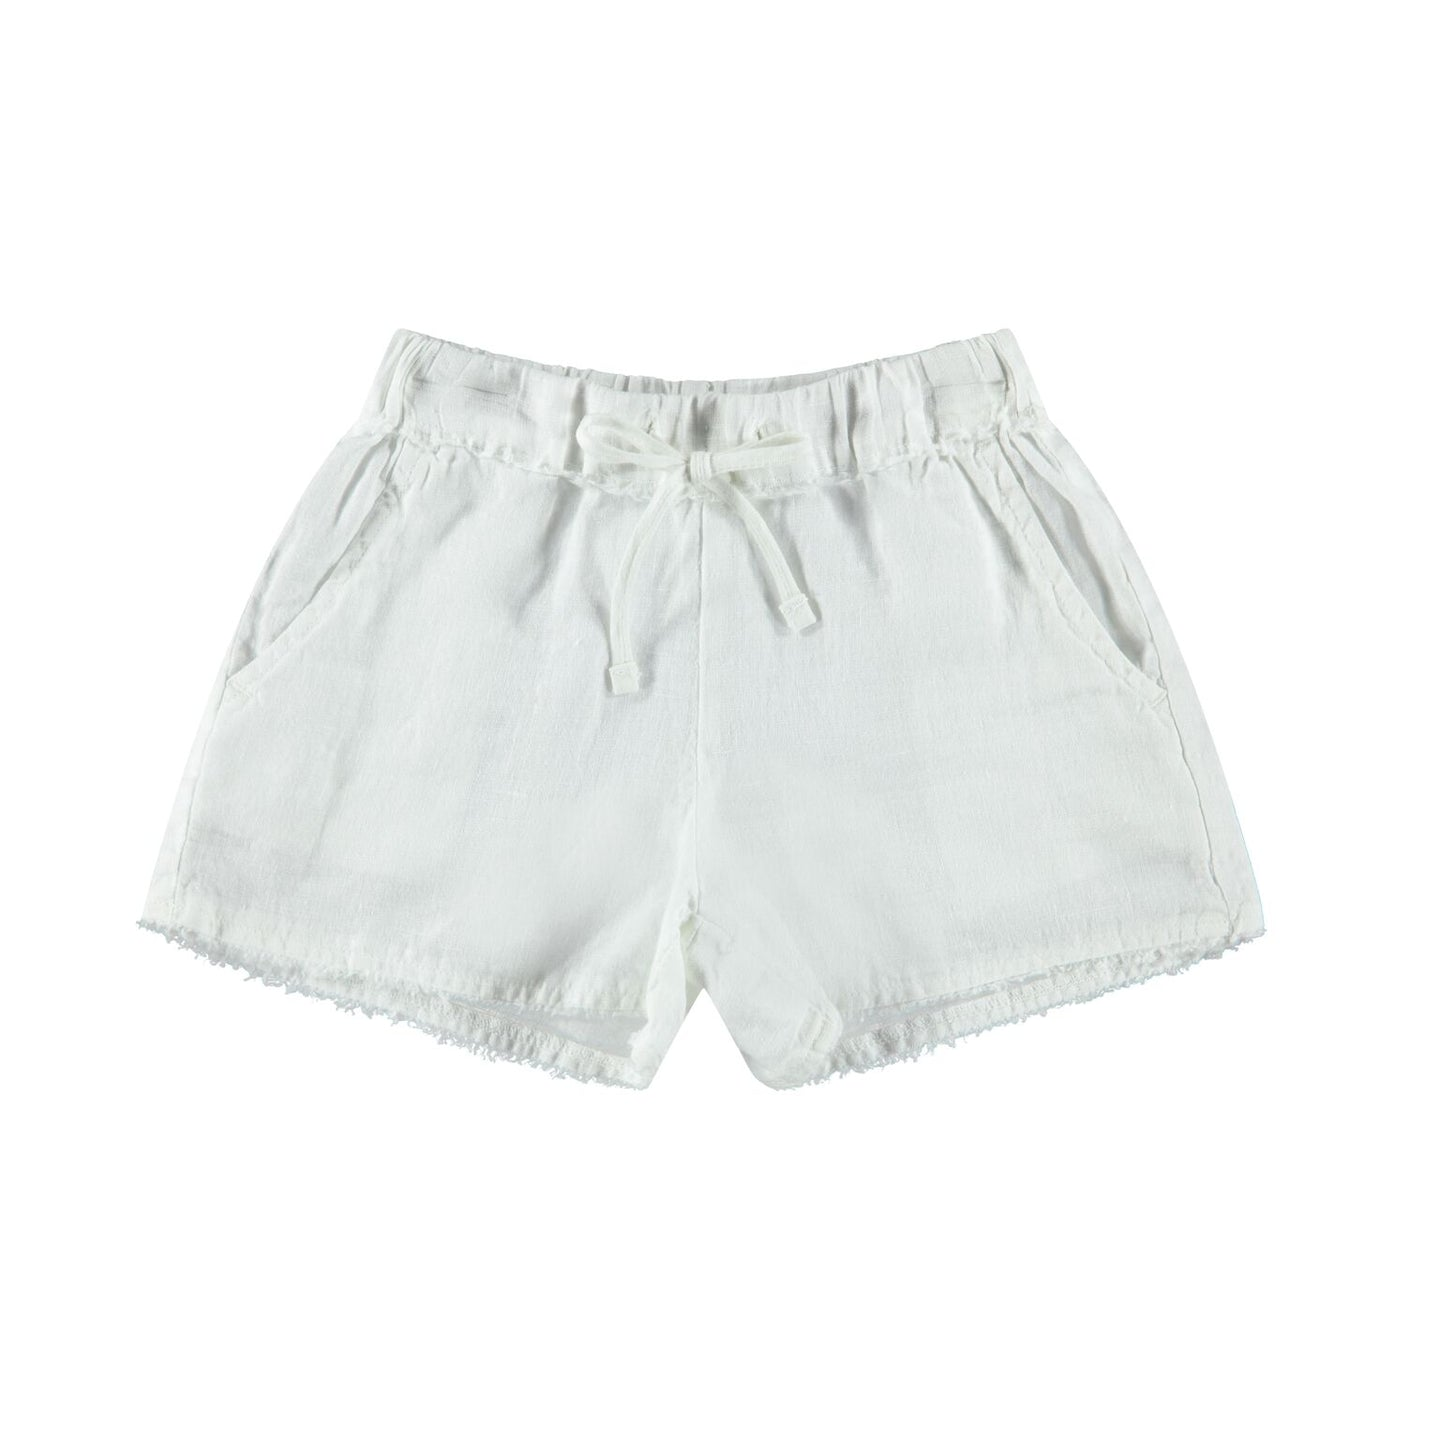 Bella Dahl - Frayed Waist Beach Short - White